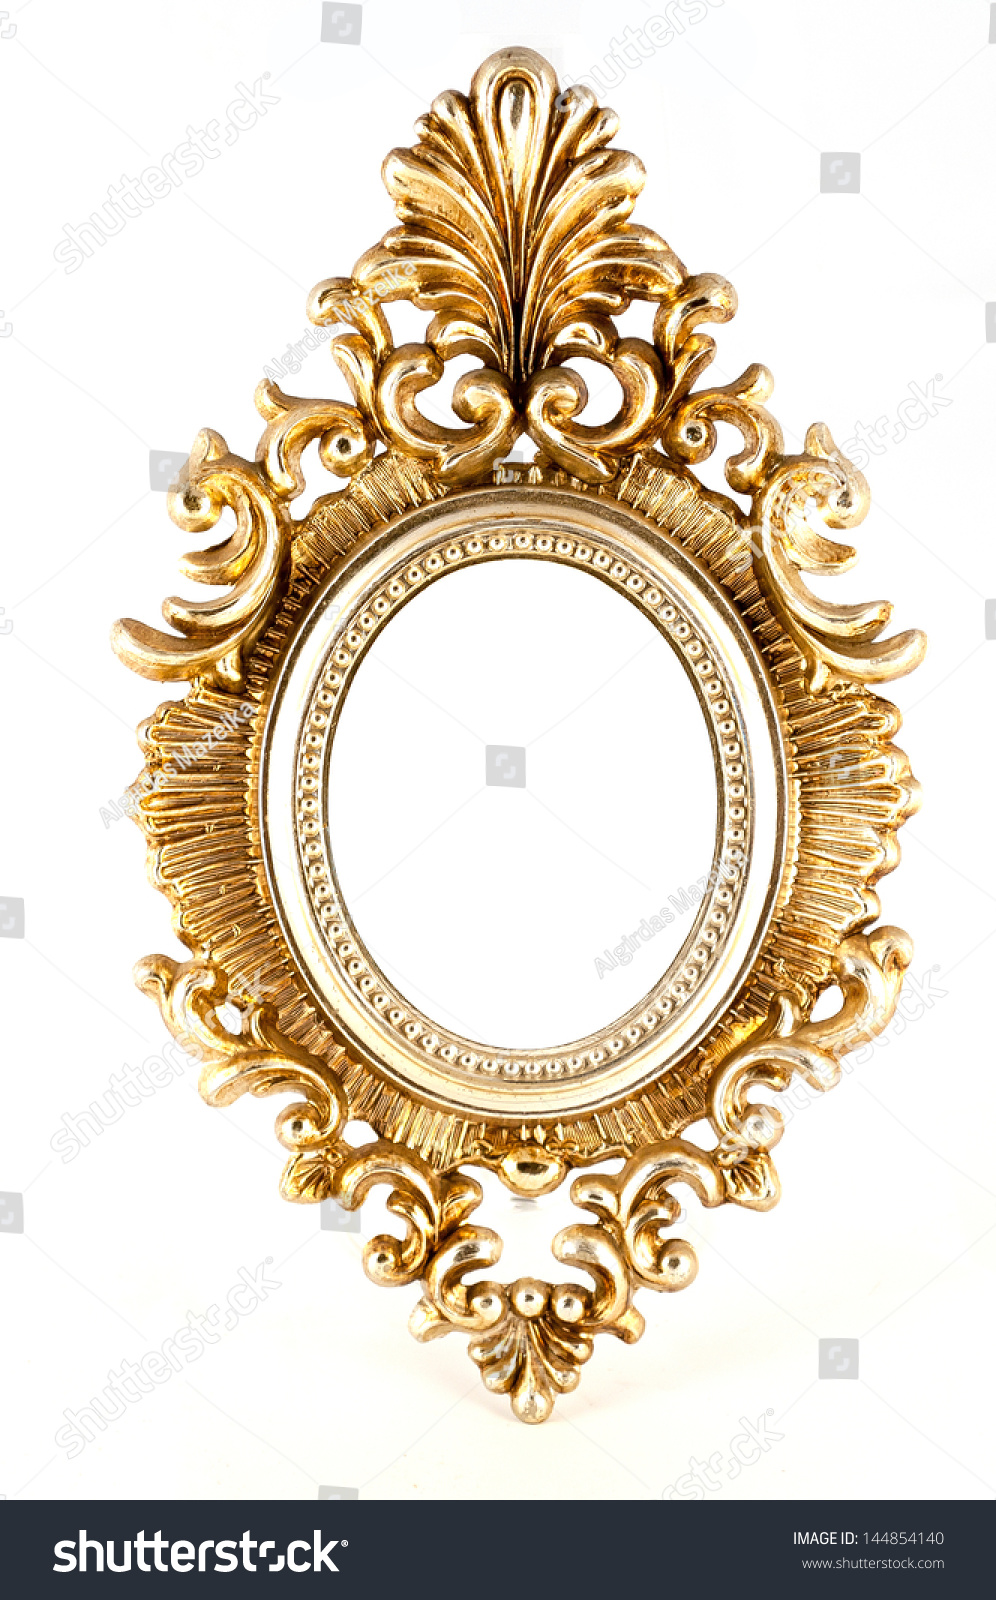 Royalty-free Ornate gold oval frame in baroque style… #144854140 ...